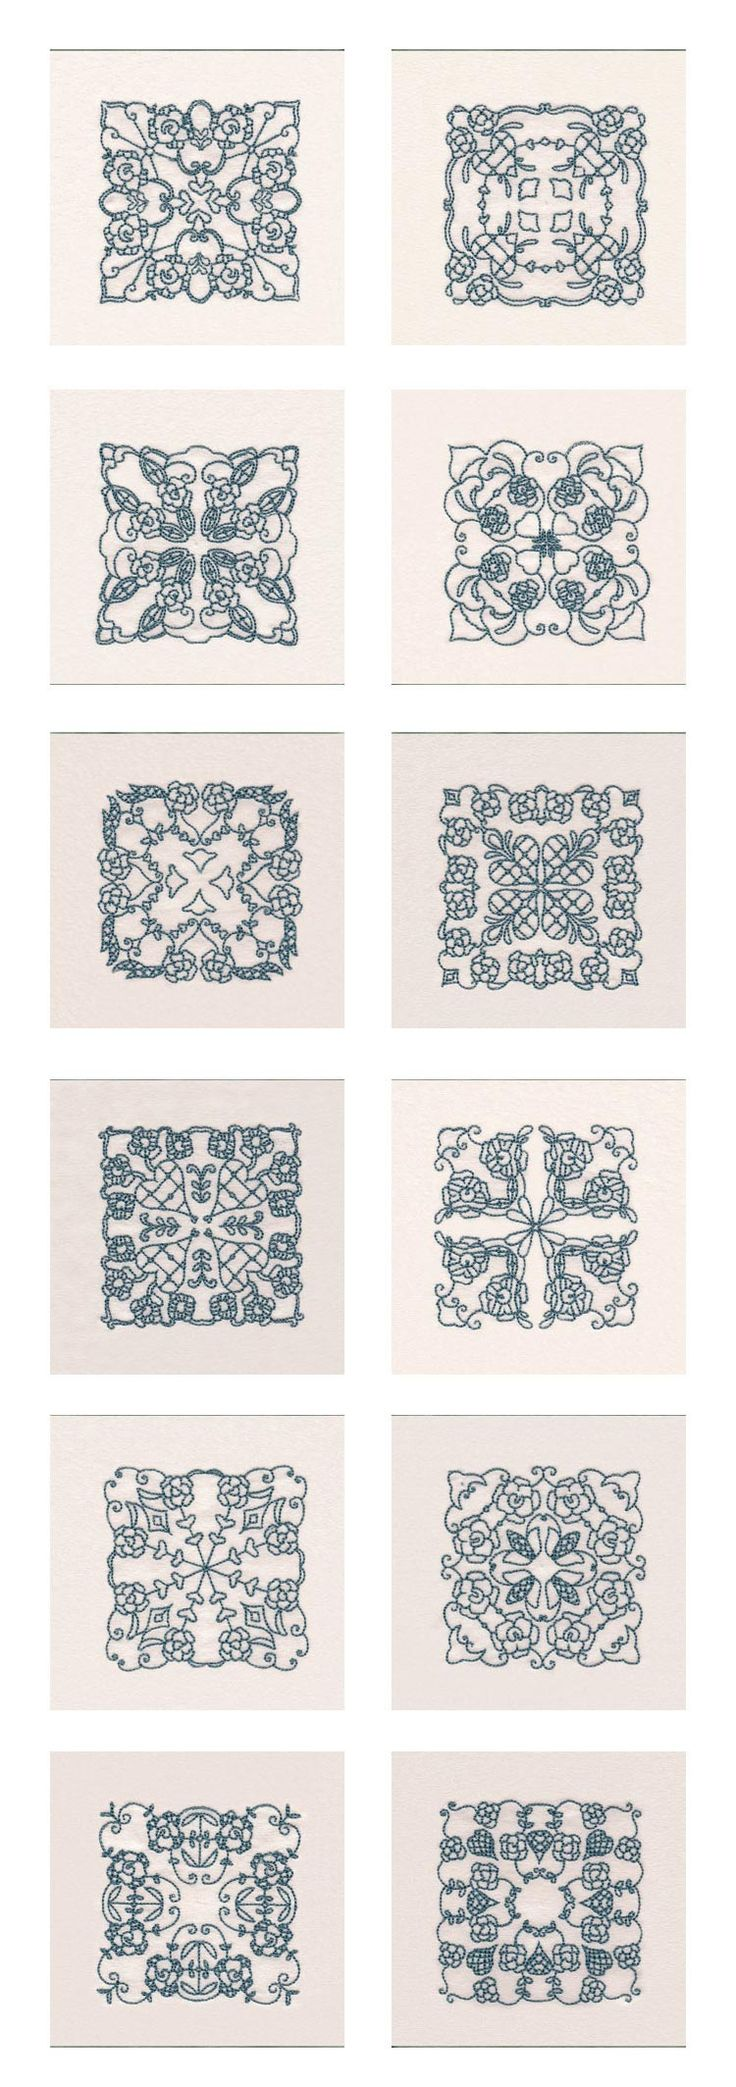 RW Native Rose Blocks Embroidery Machine Design Details